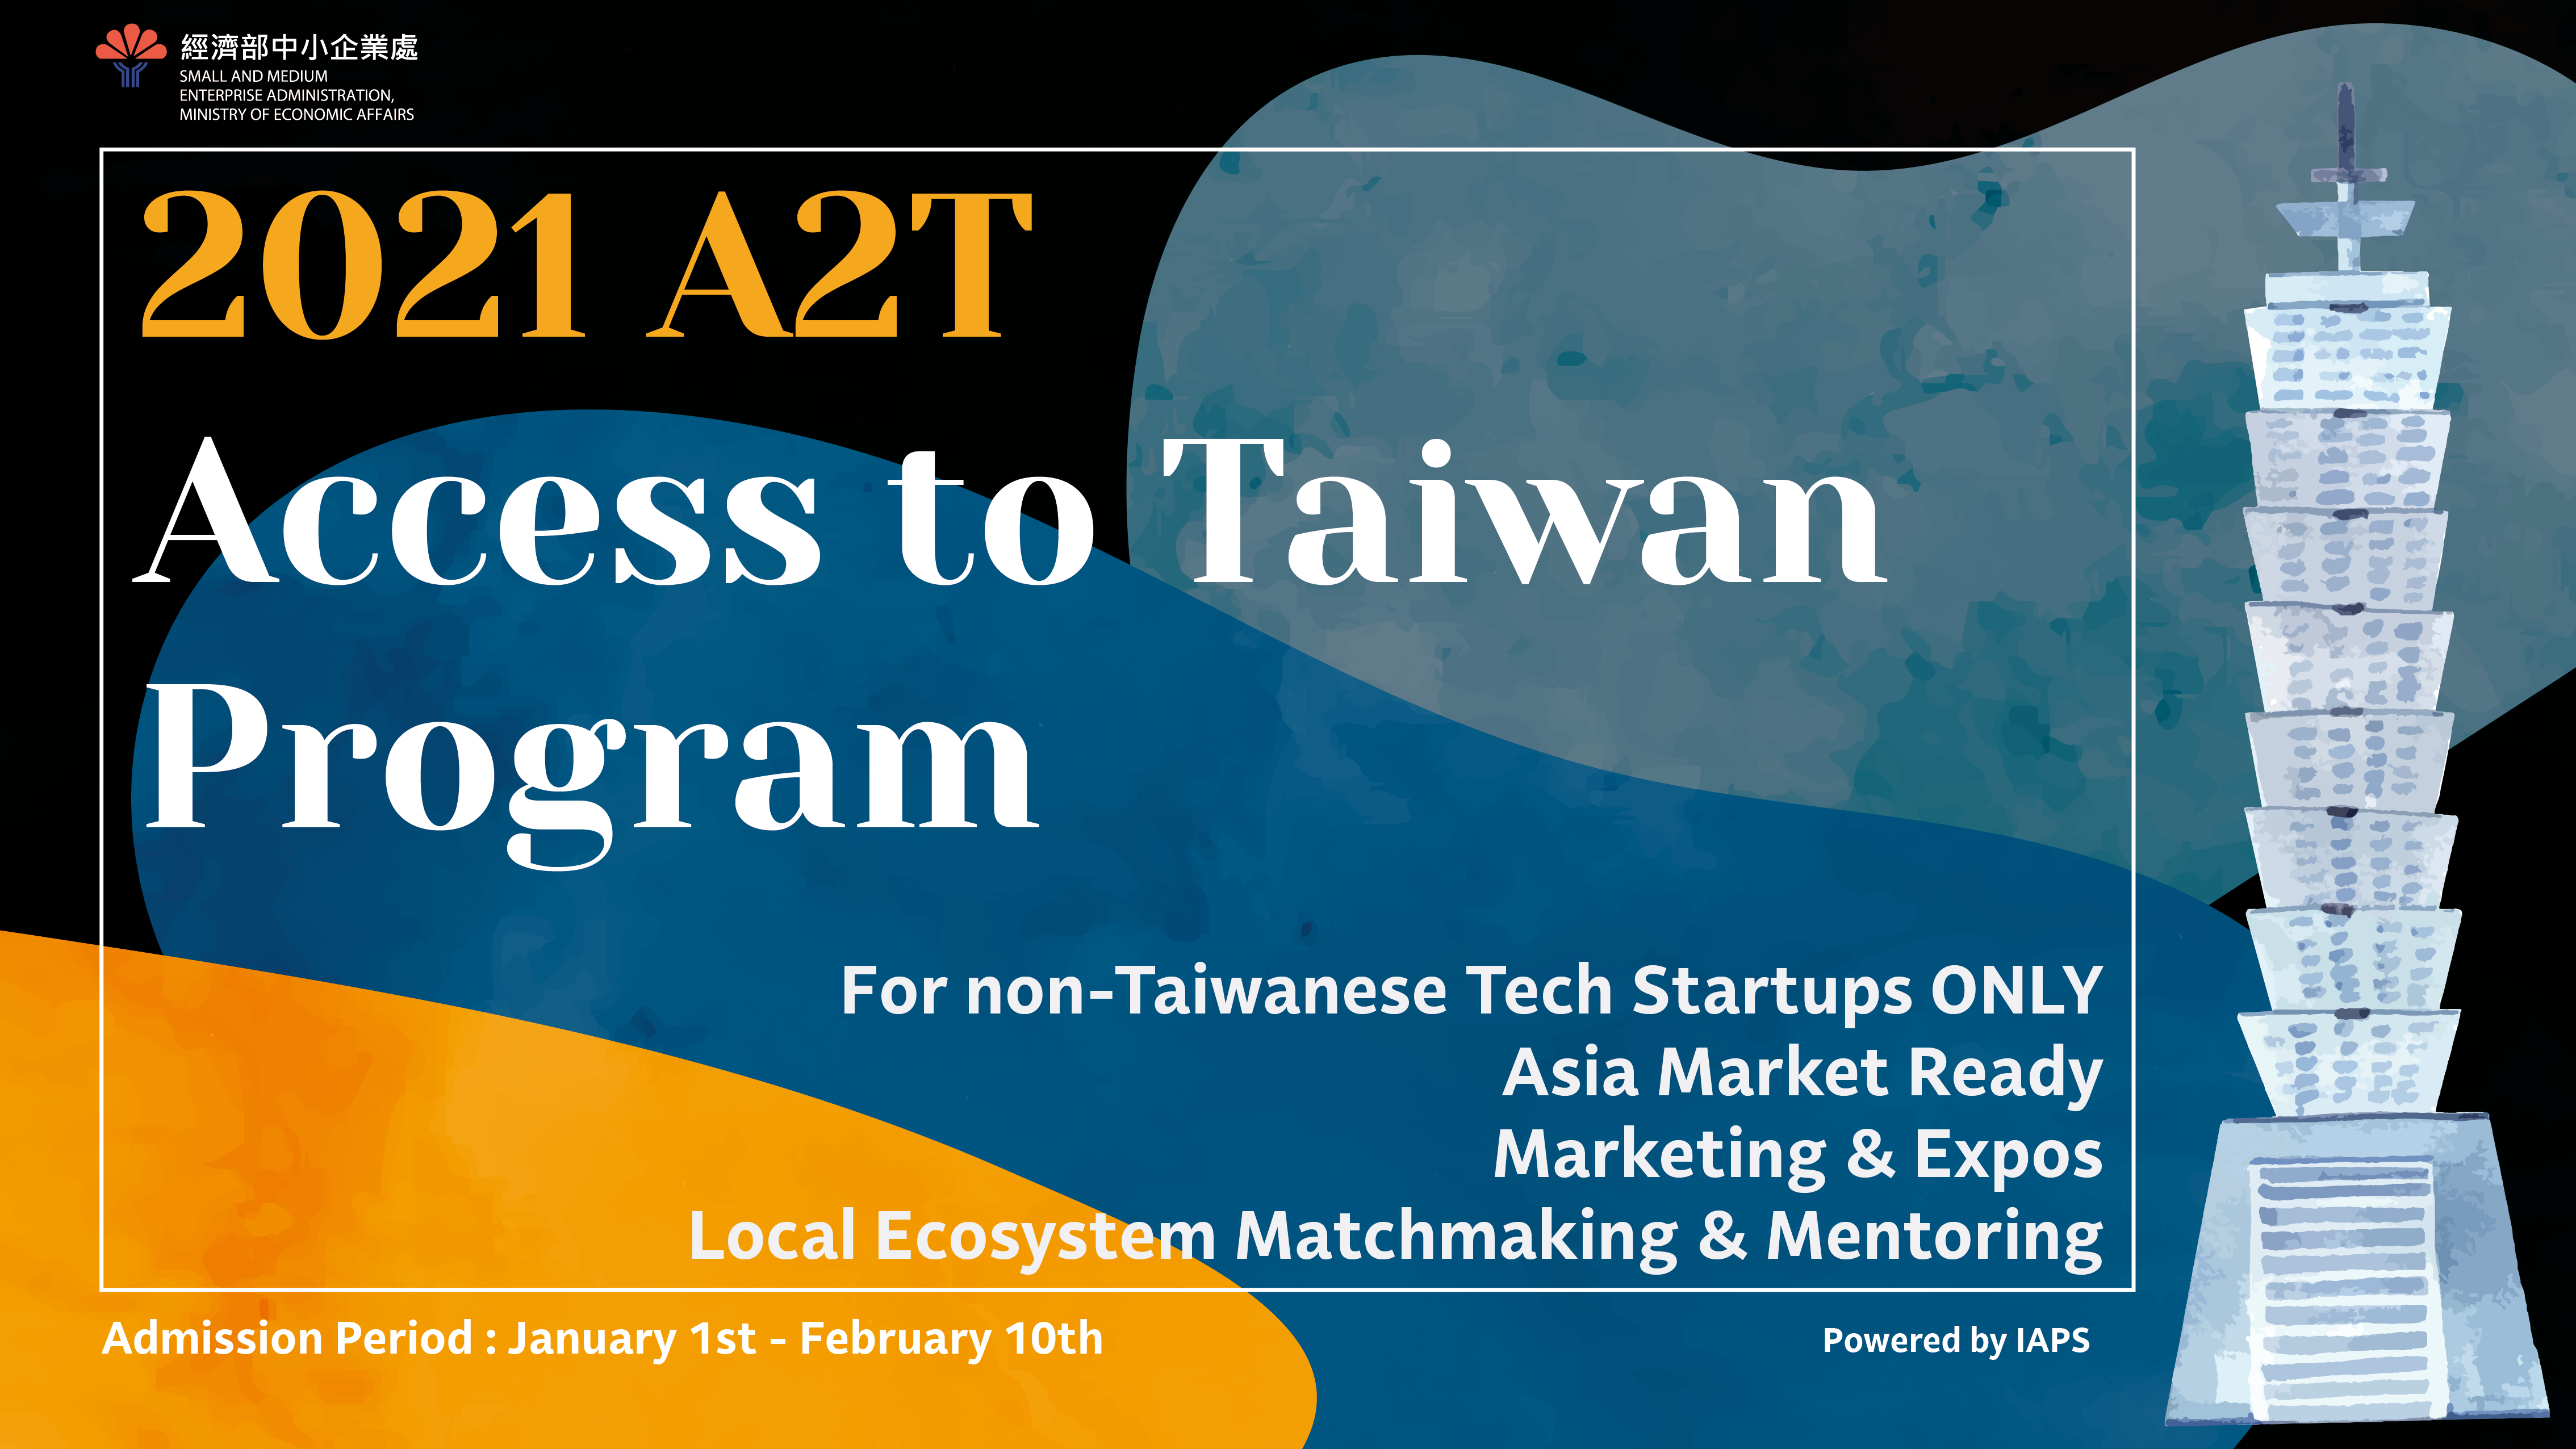 2021 A2T Access to Taiwan Program